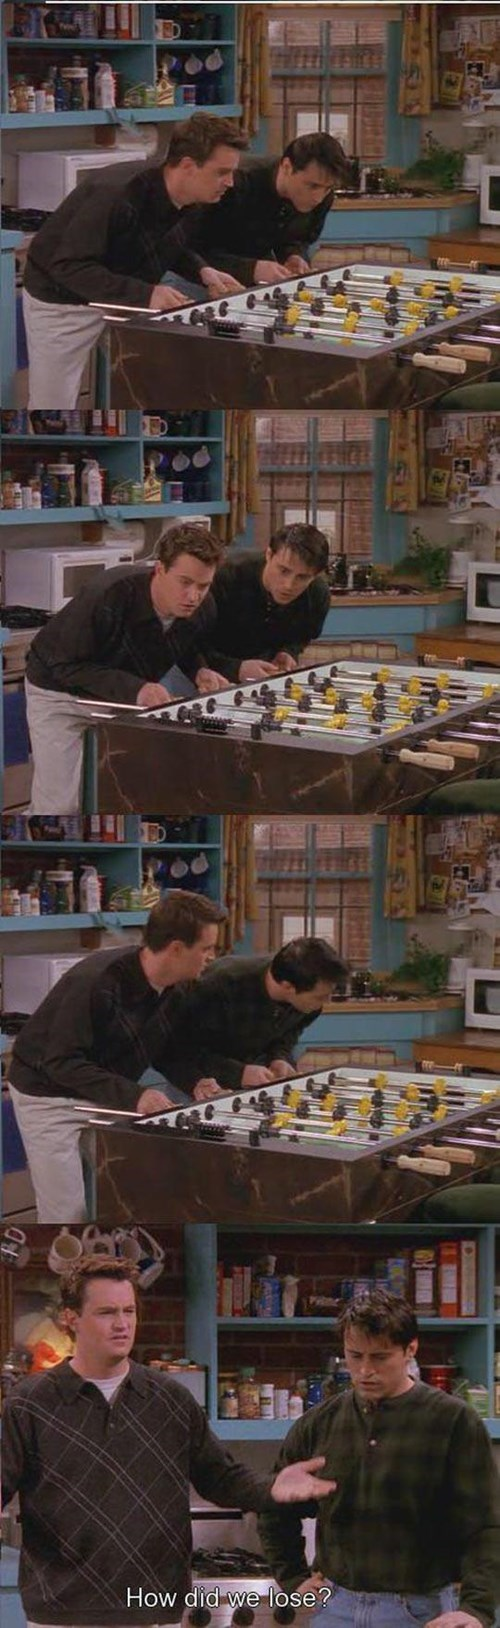 games,friends,lose,foosball